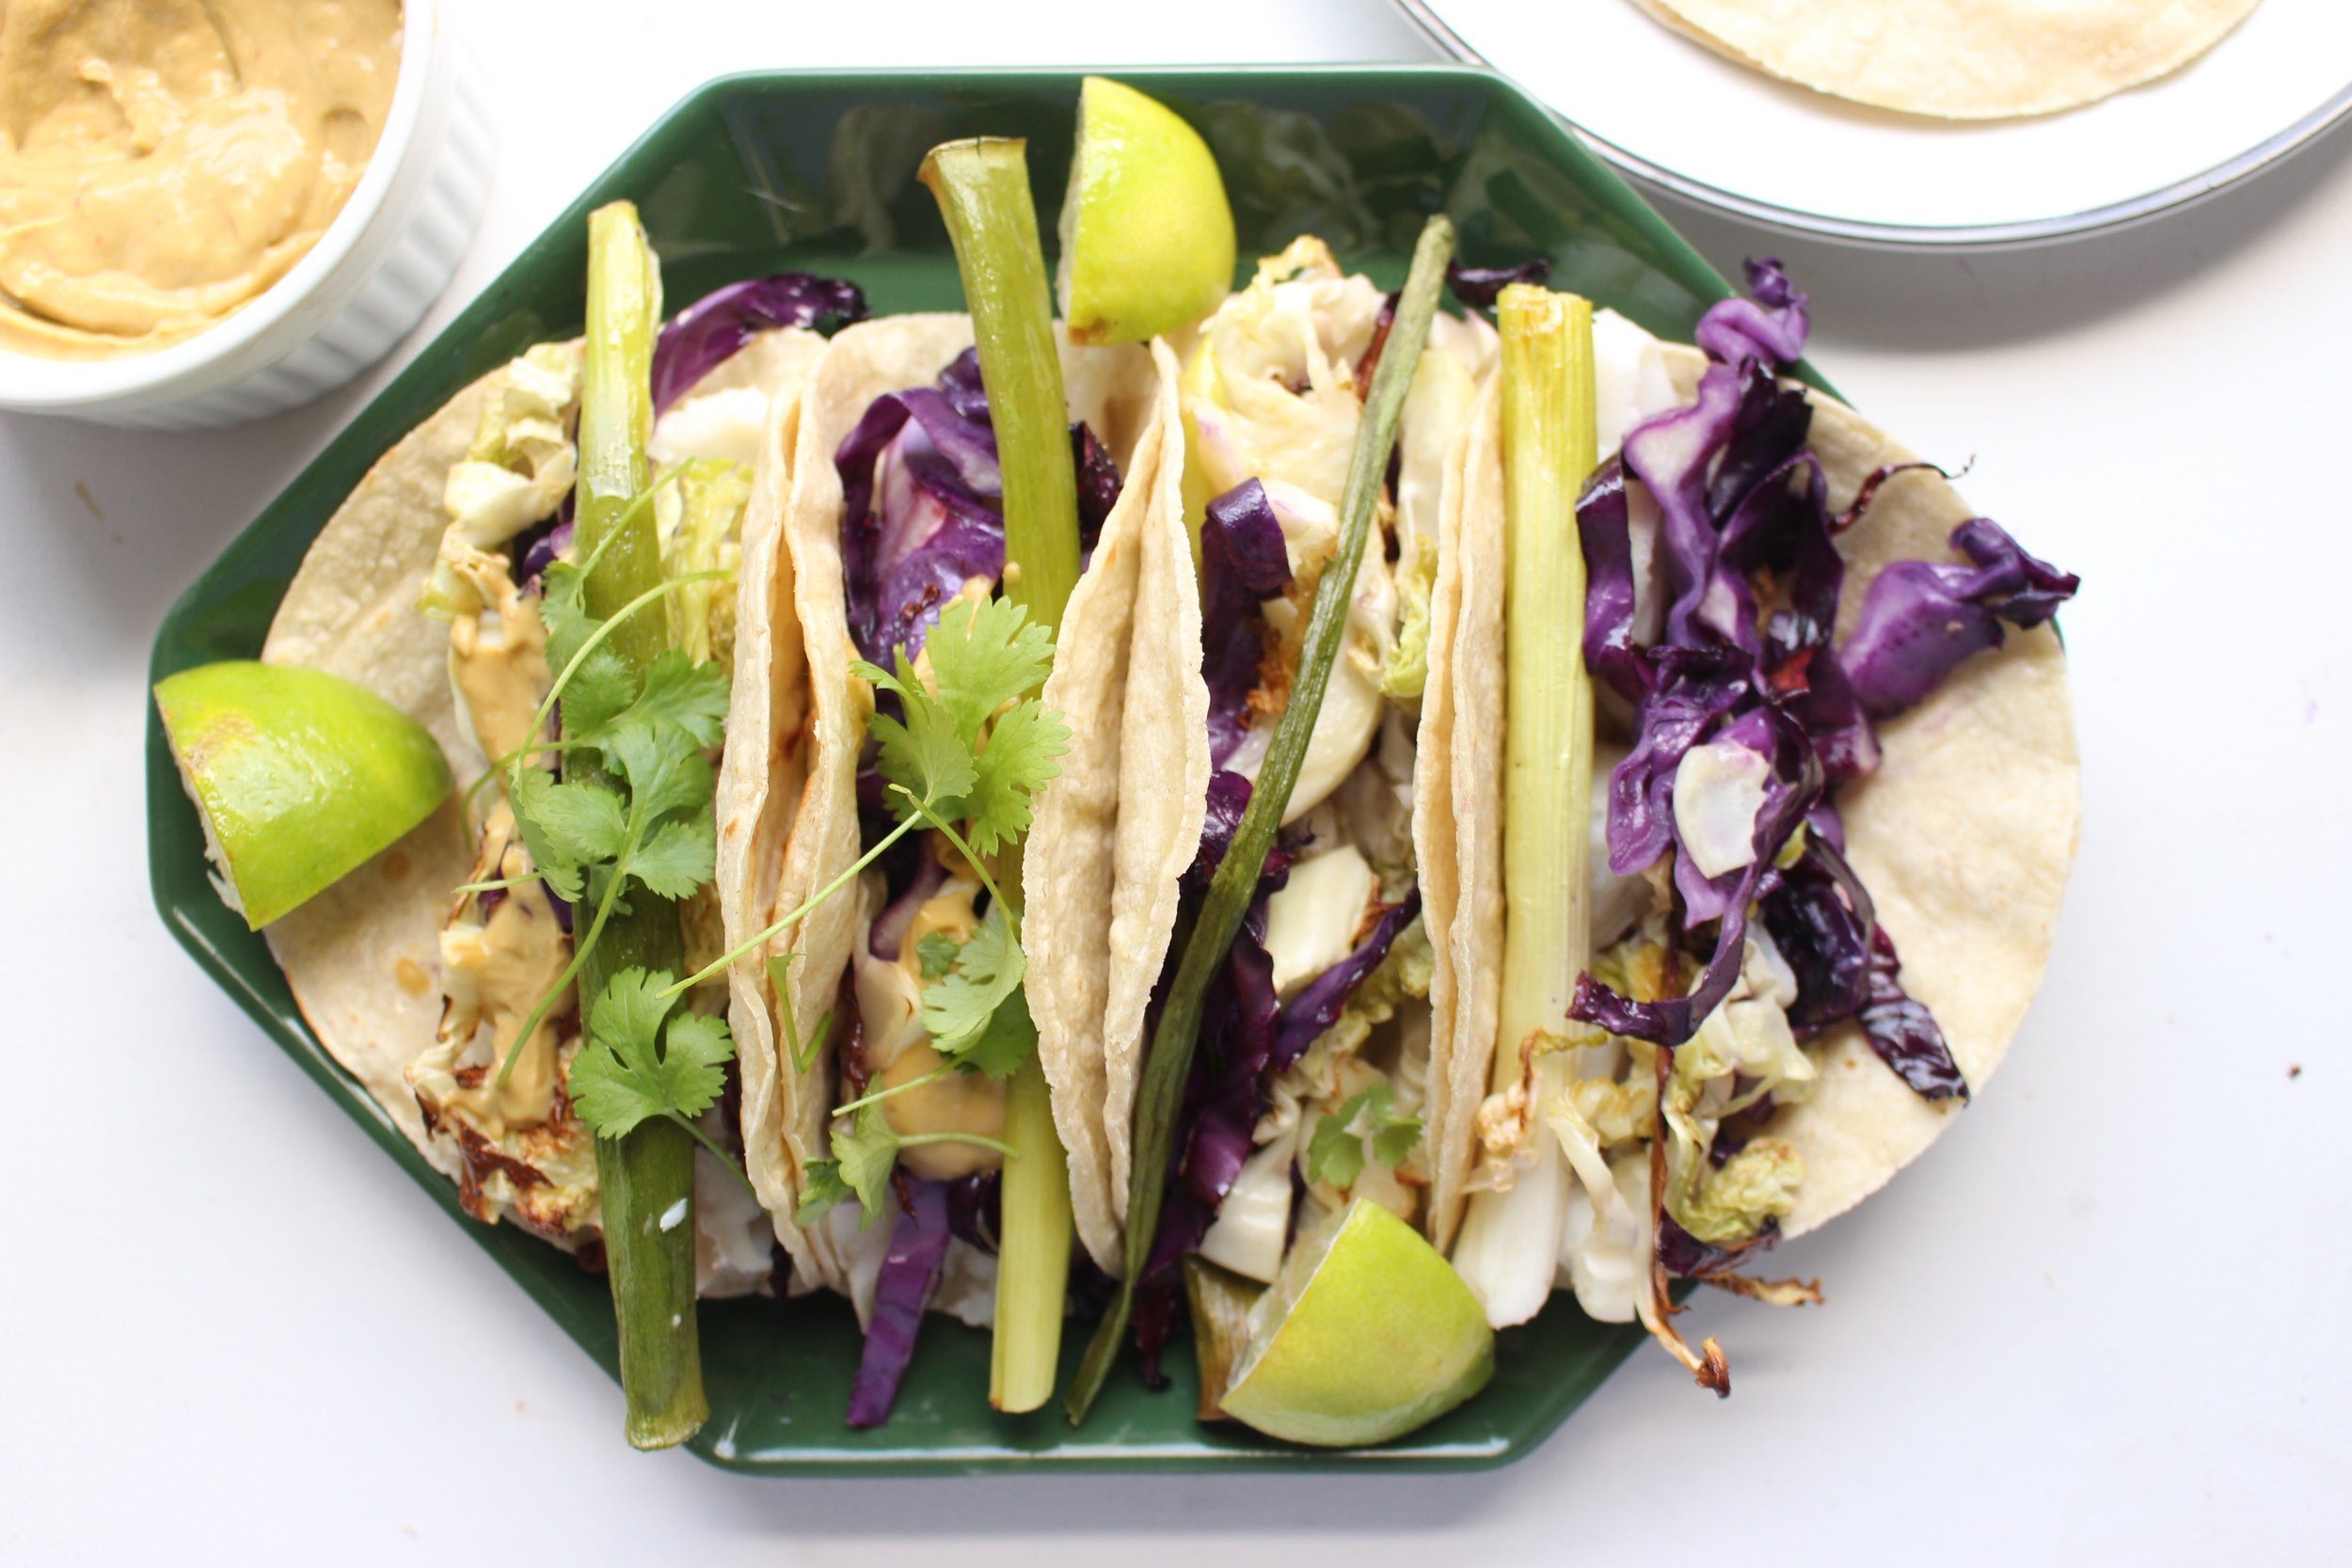 Roasted white fish, cabbage, and scallion tacos that all cook together on a sheet pan.